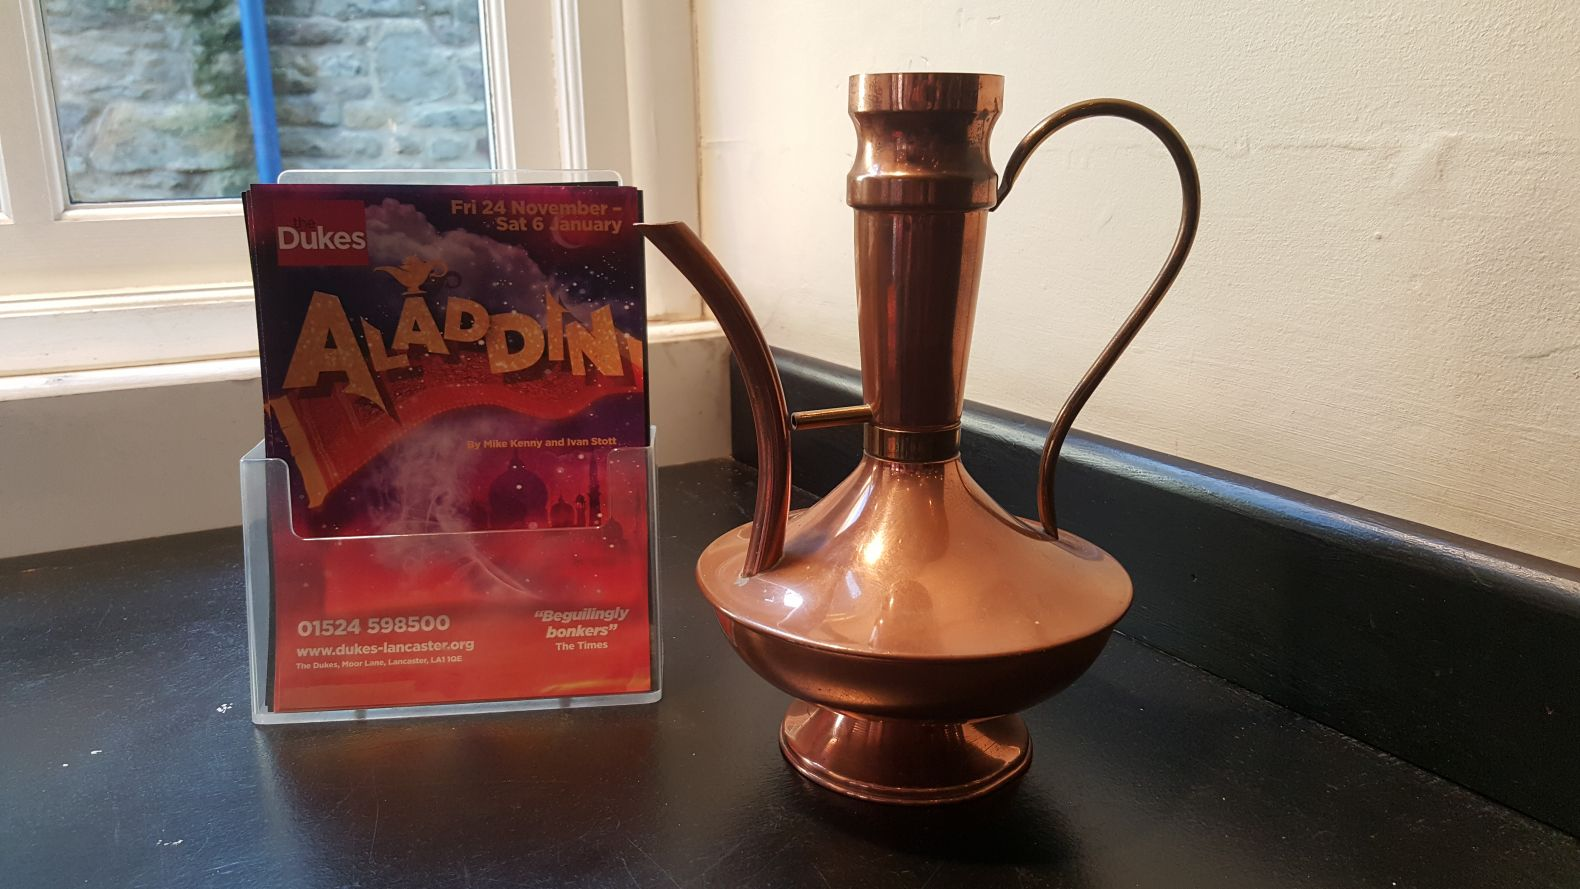 Help Aladdin Find His Missing Magic Lamp